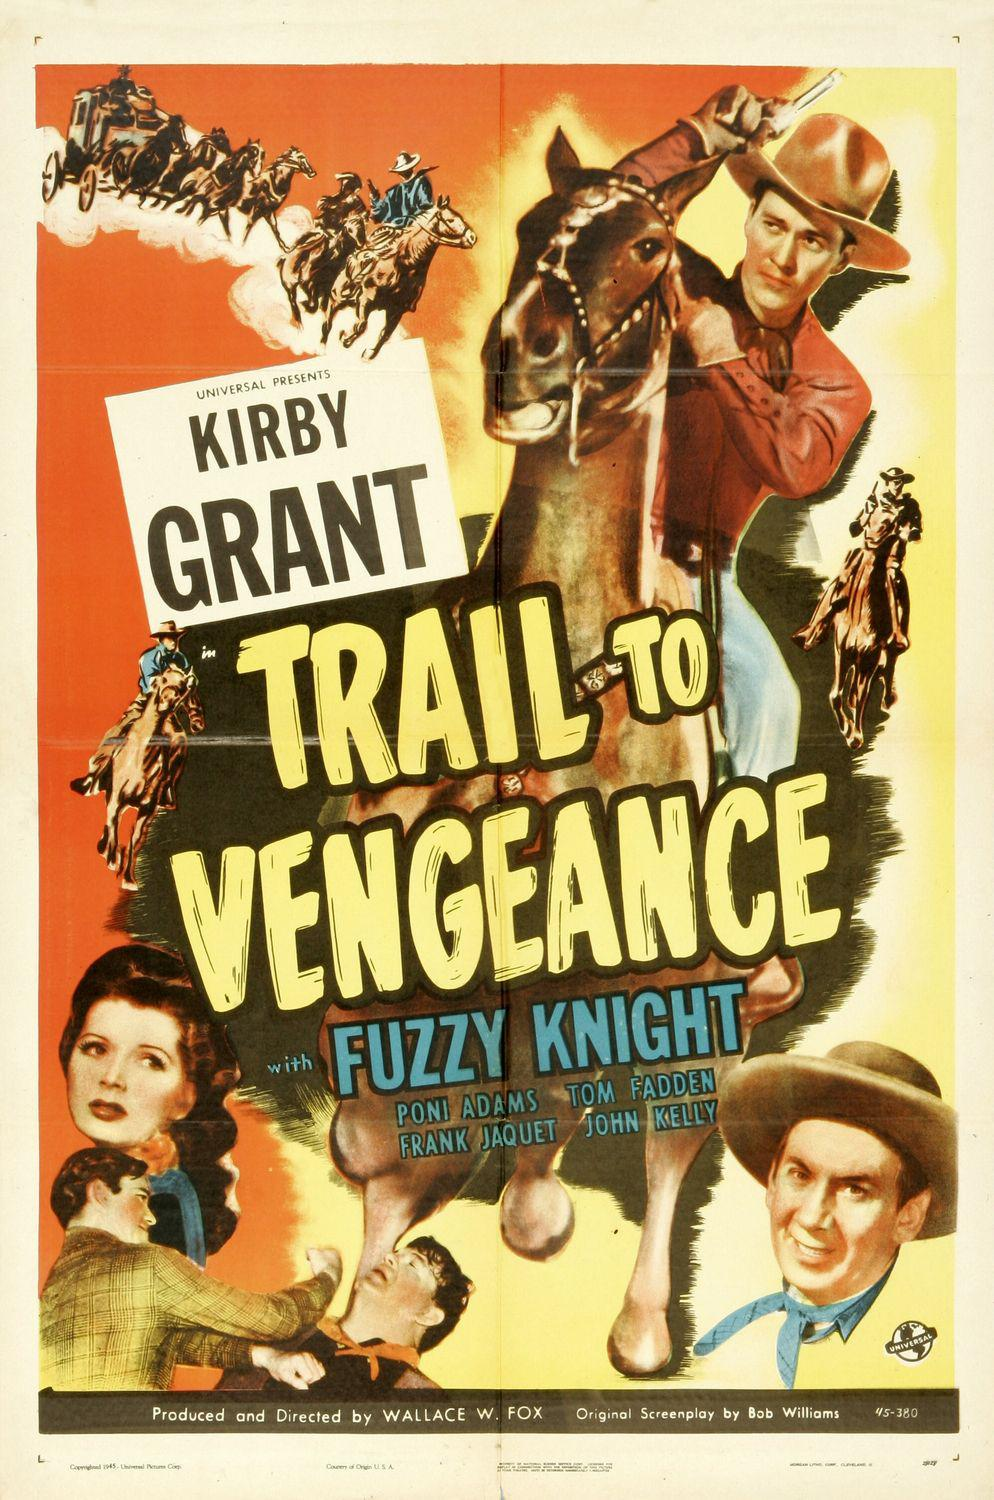 Trail to Vengeance - Kirby Grant - Fuzzy Knight